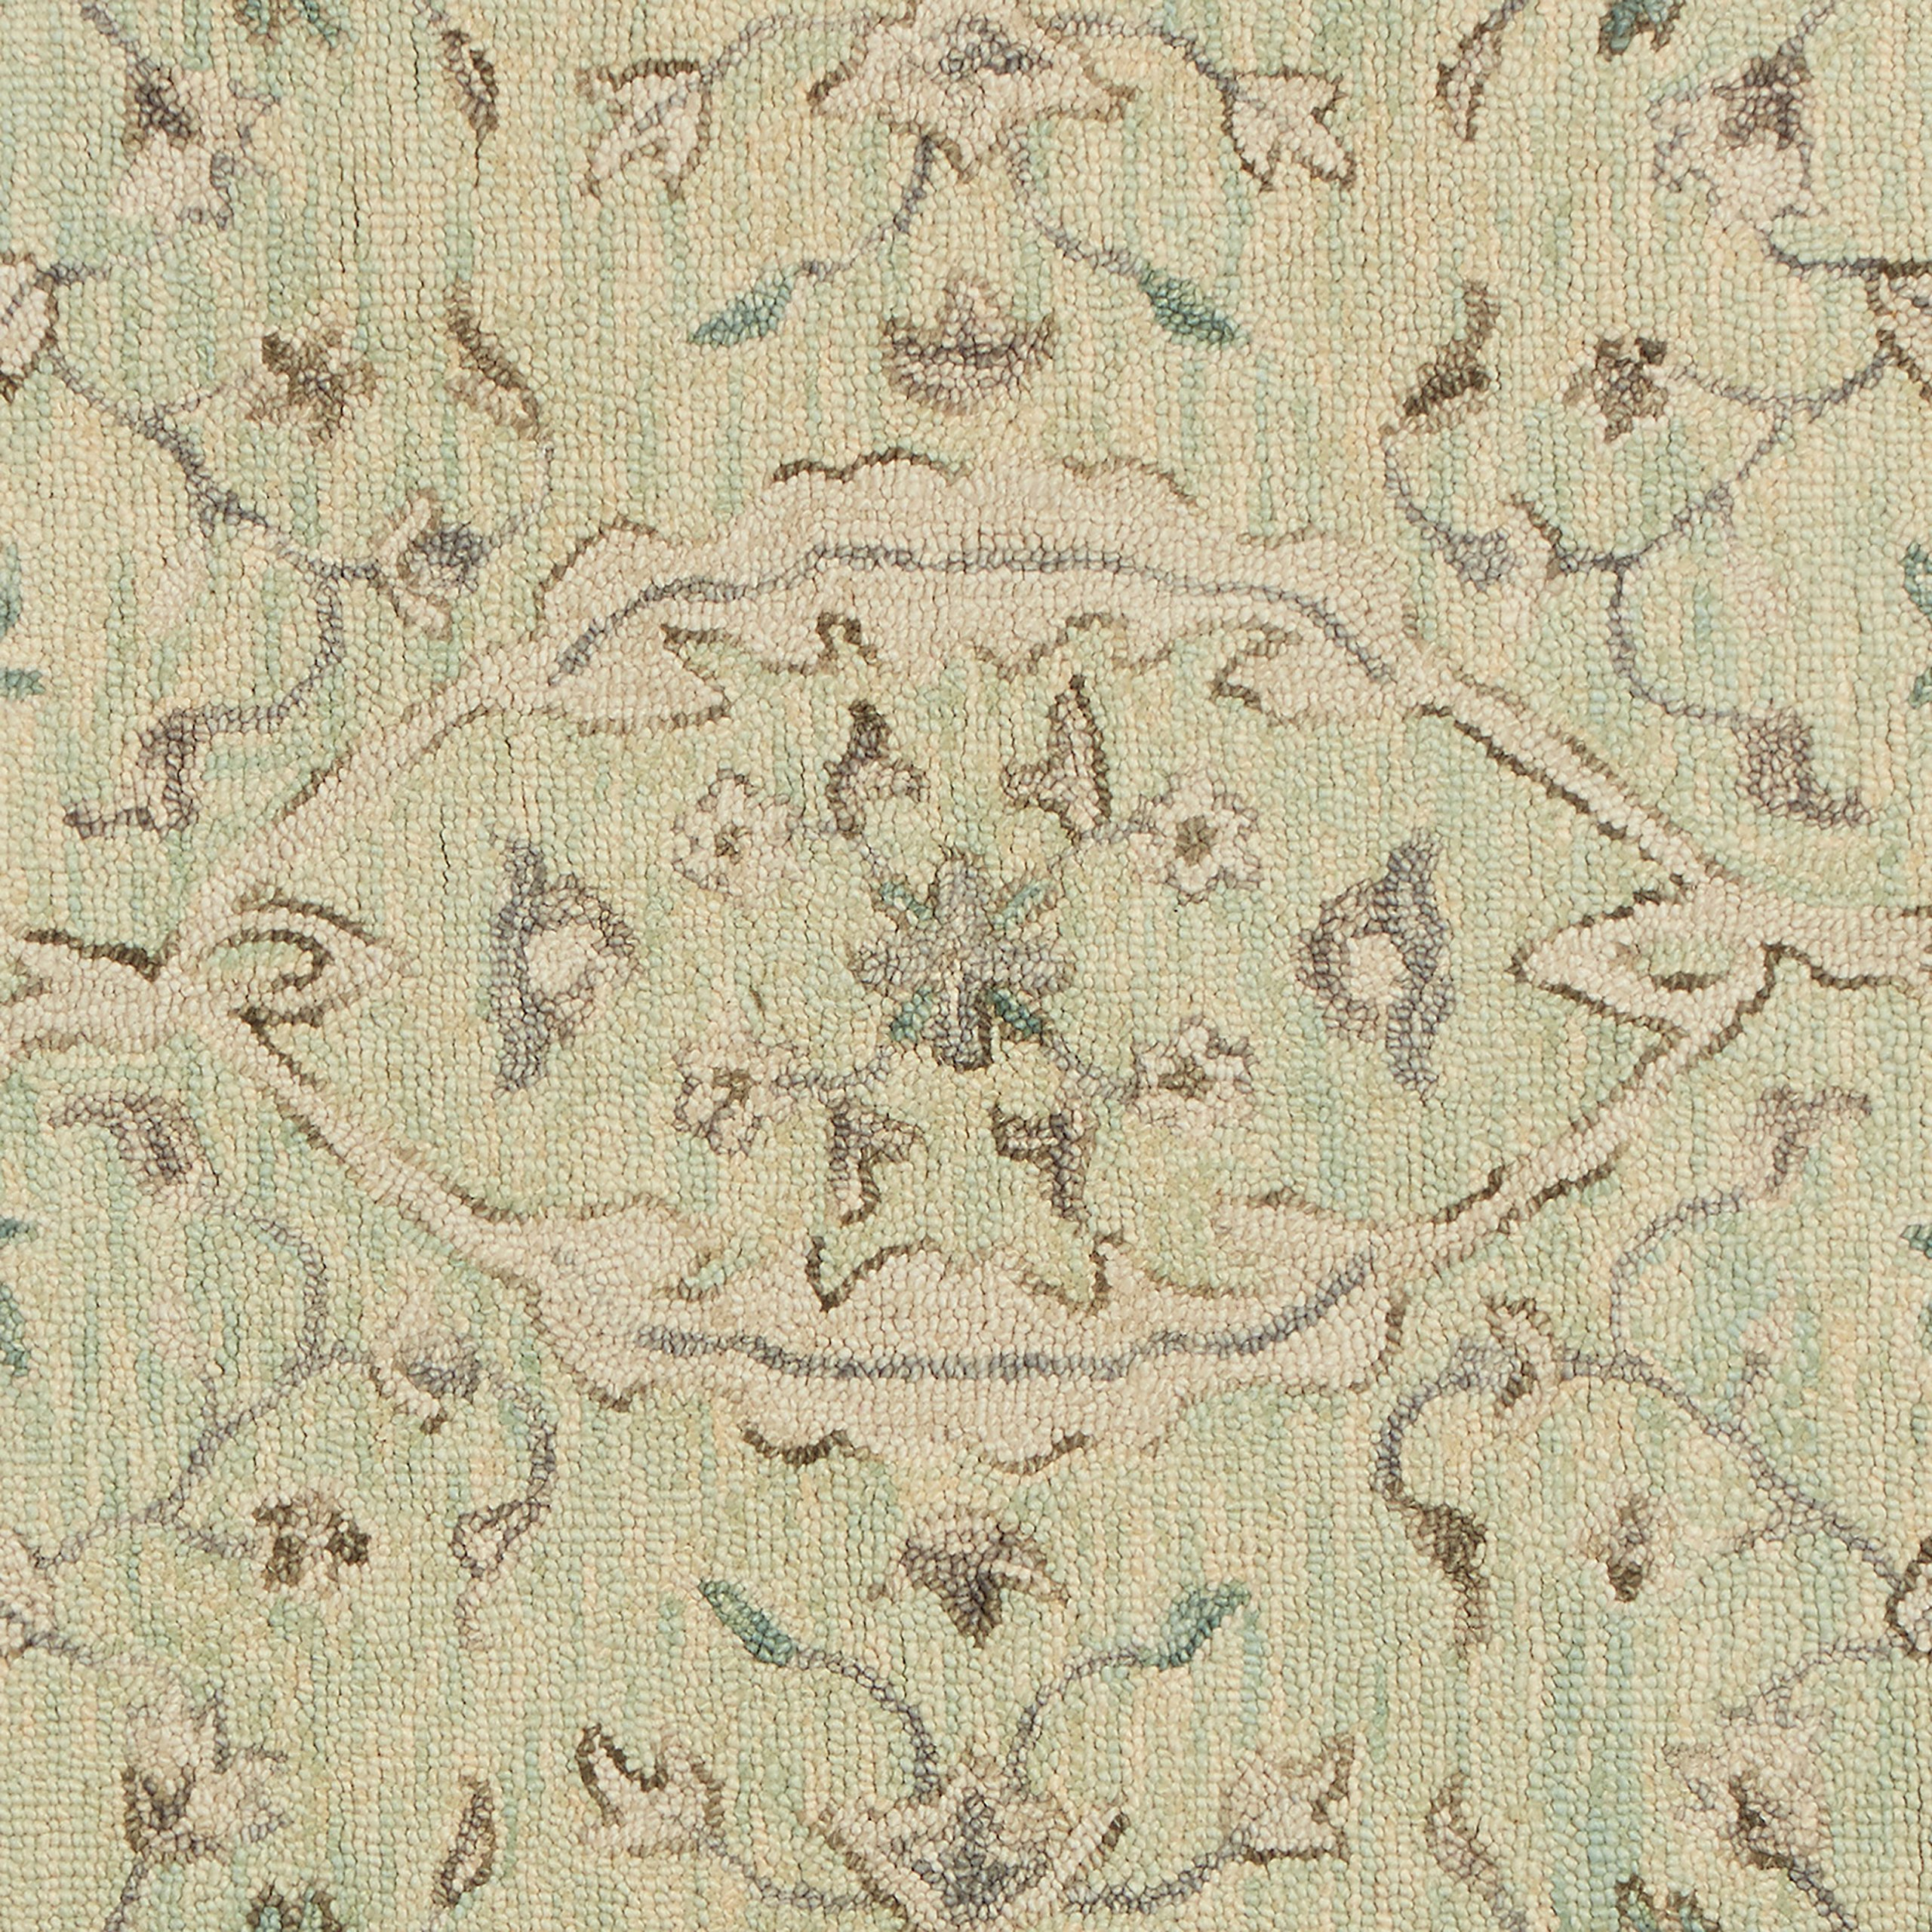 Stone & Beam Serene Transitional Wool Area Rug, 8' x 10', Multi by Stone & Beam (Image #2)